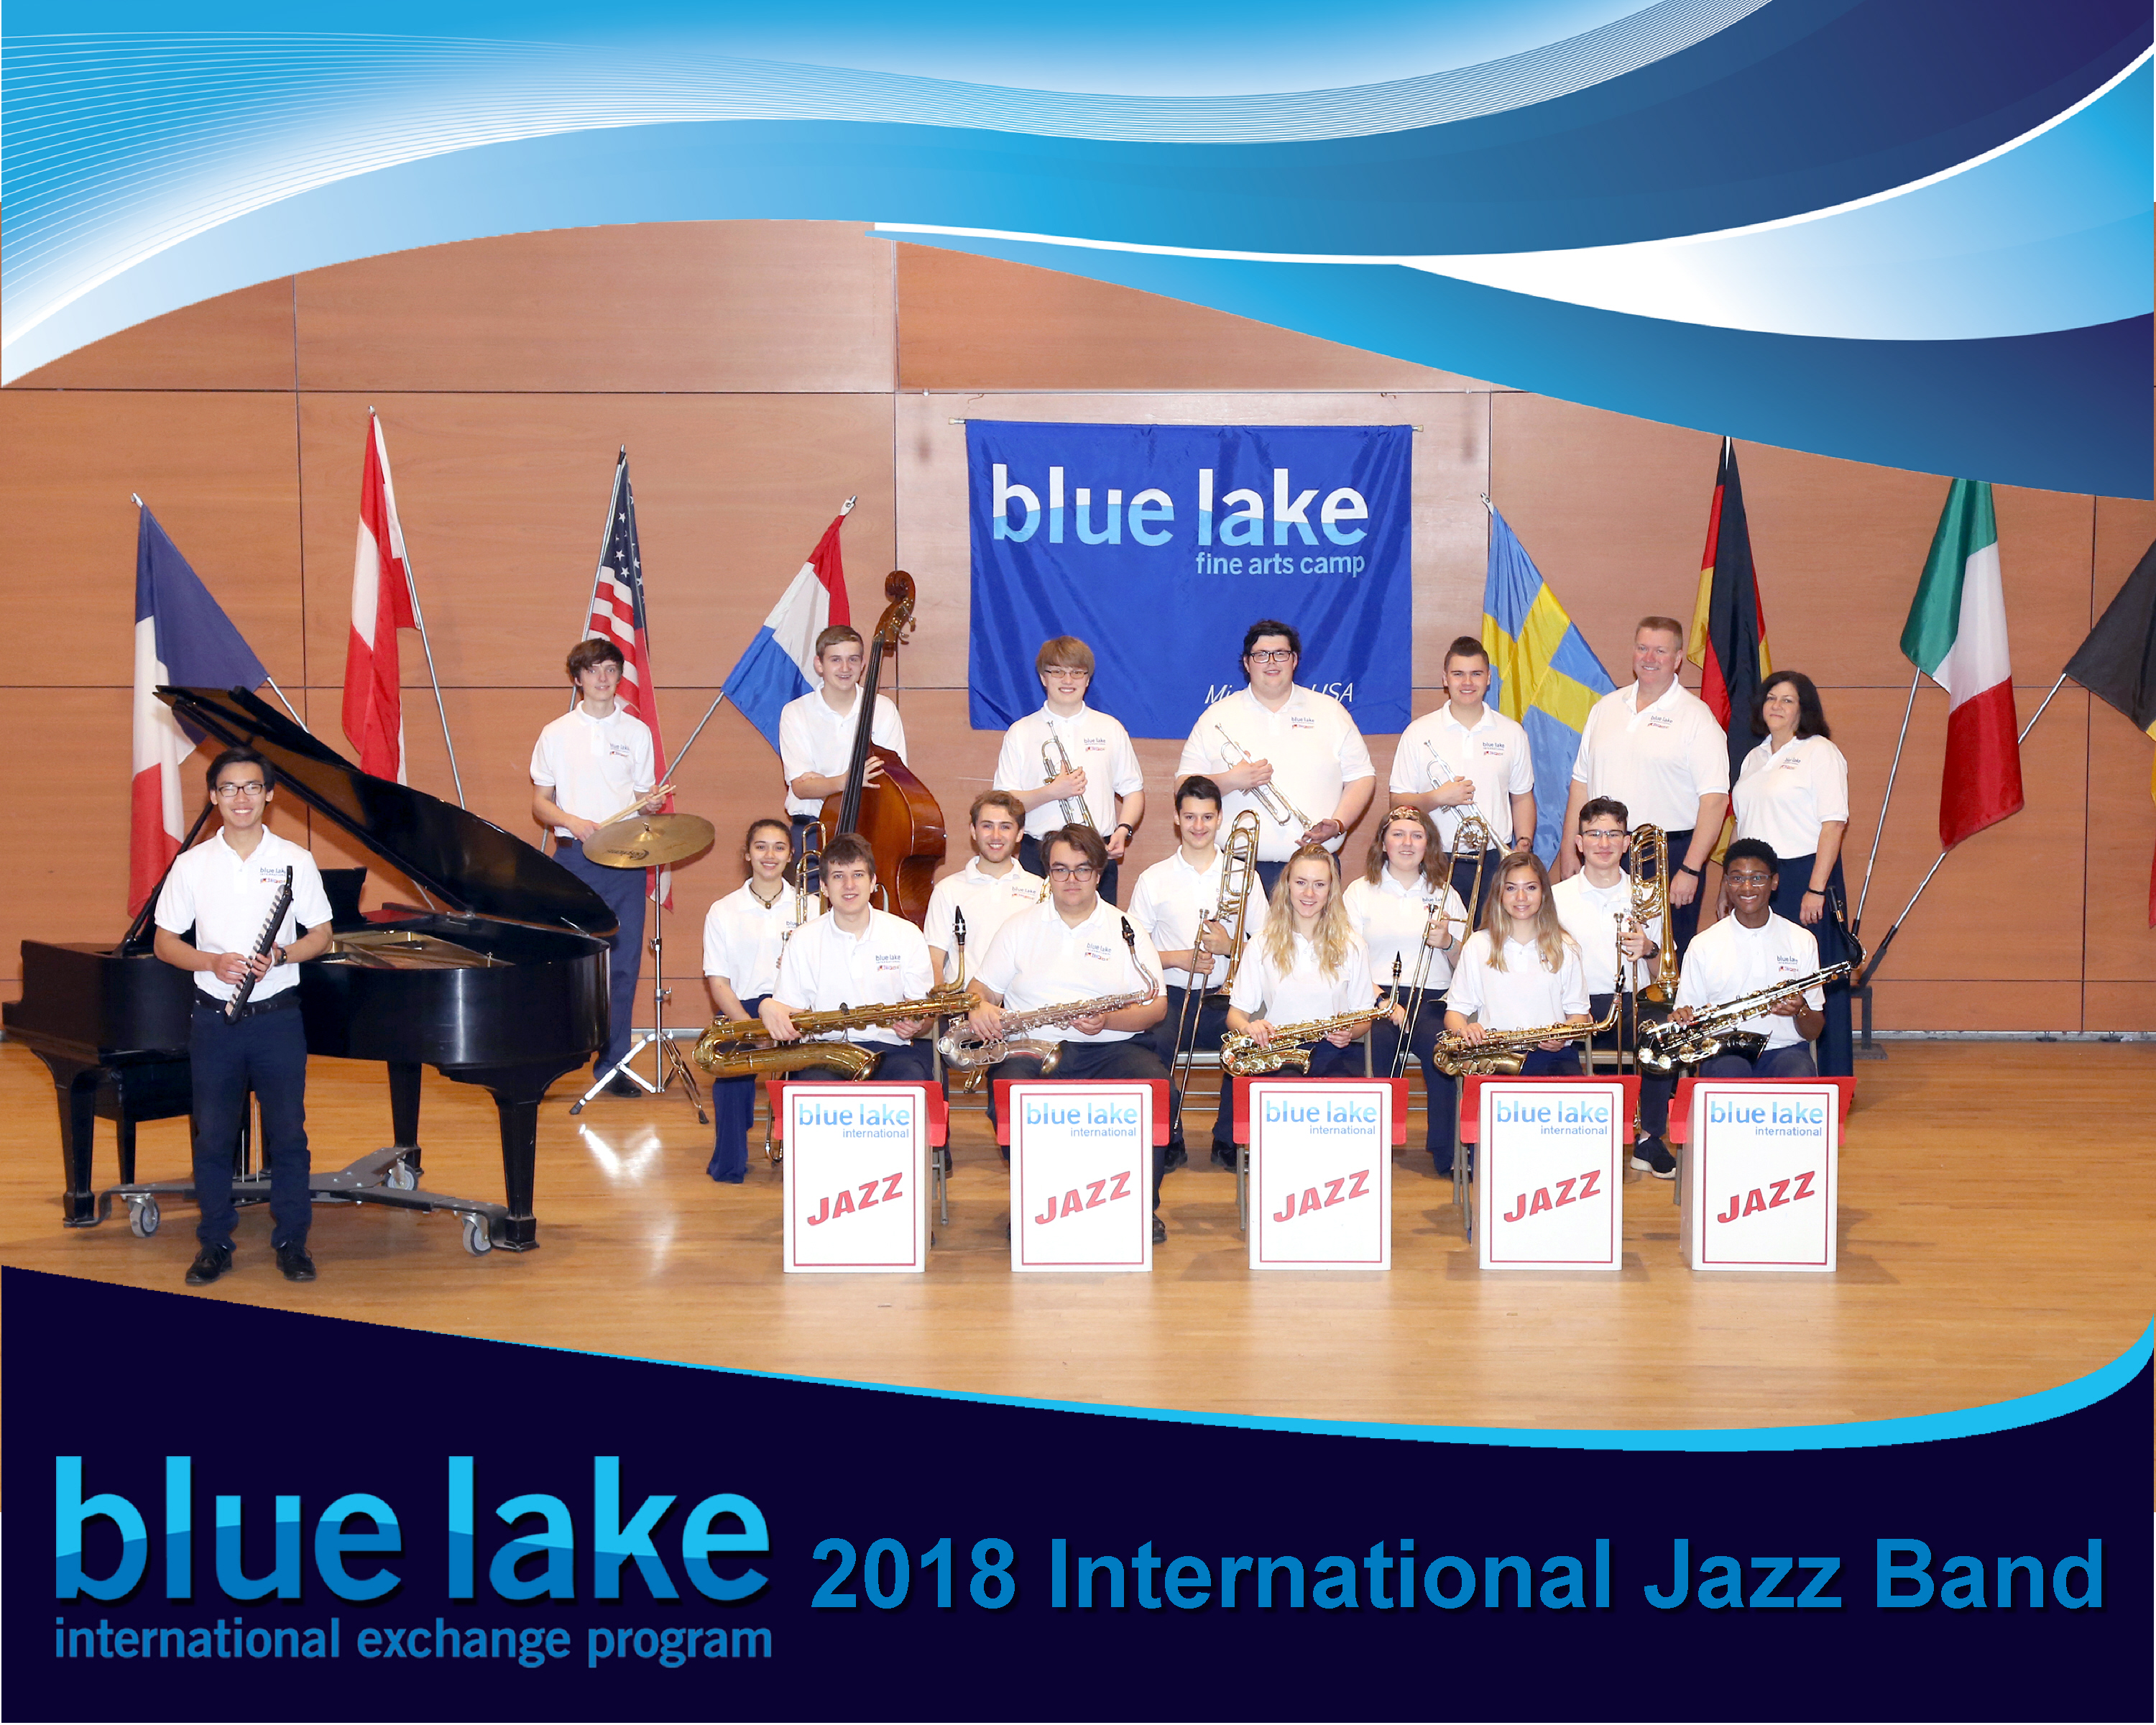 Gastfamilien gesucht – Blue Lake International Jazz Band zu Besuch im Juni